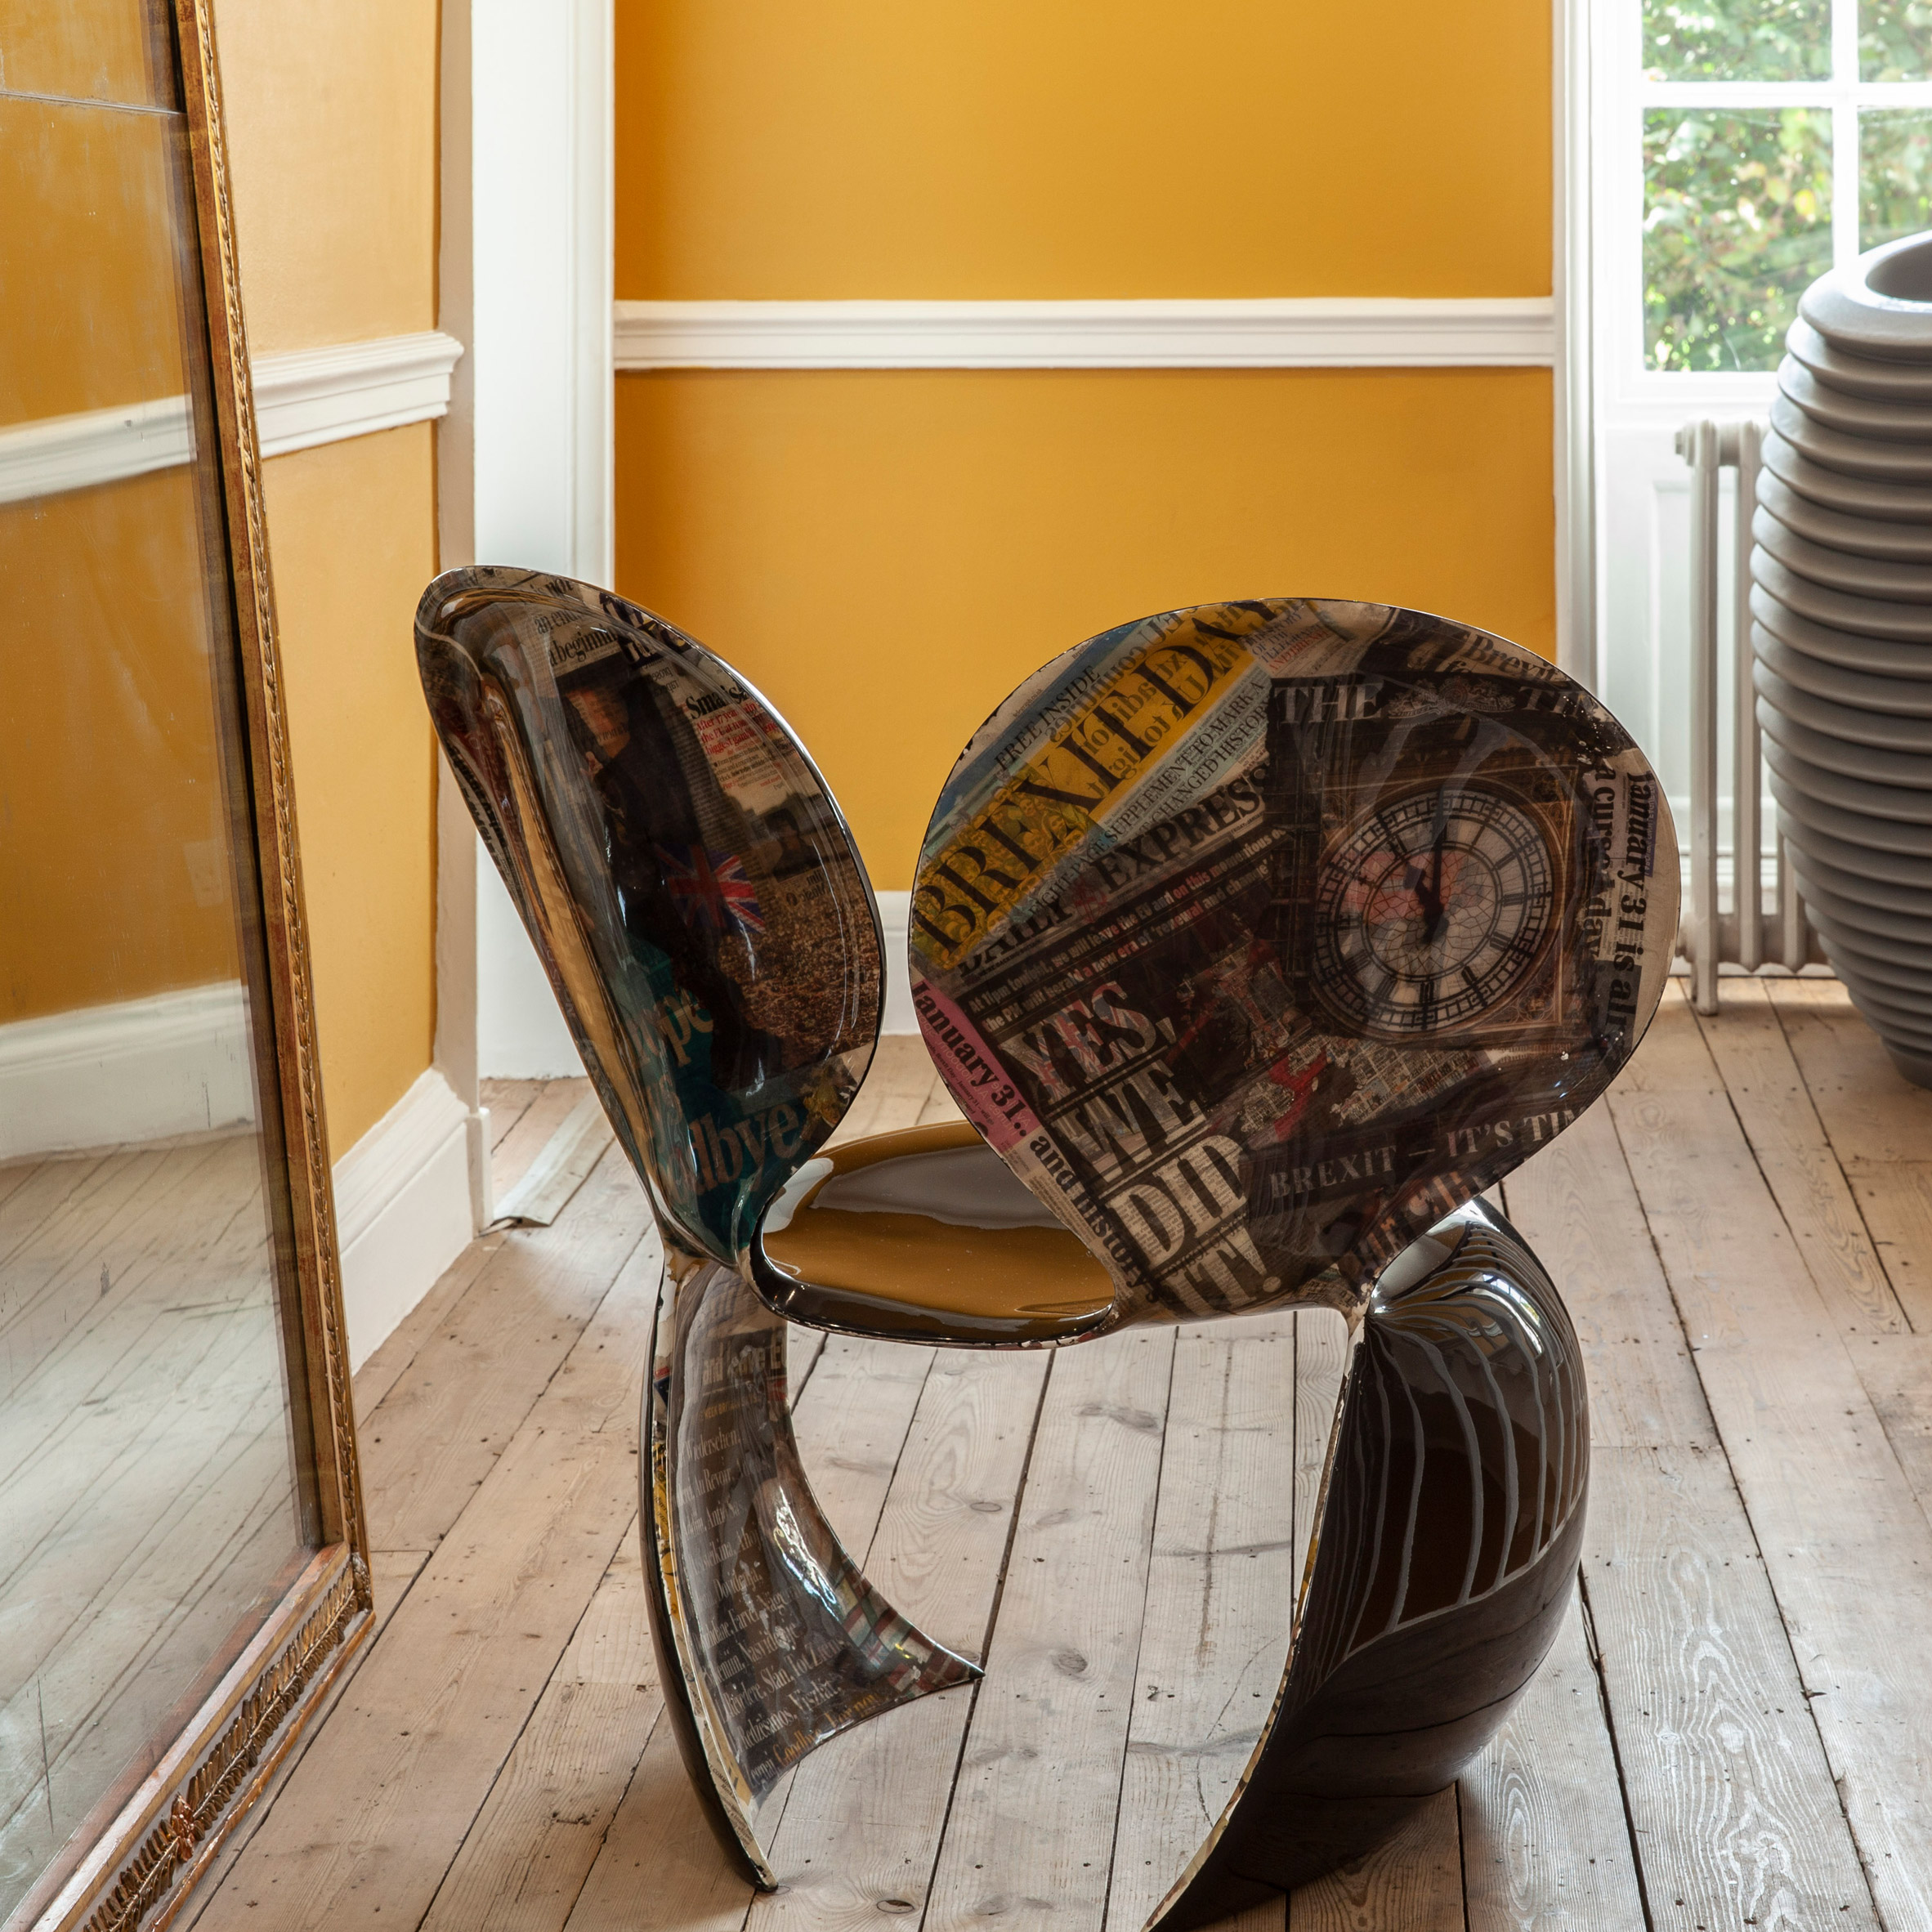 Ron Arad 69 exhibition at Newlands House: Now What